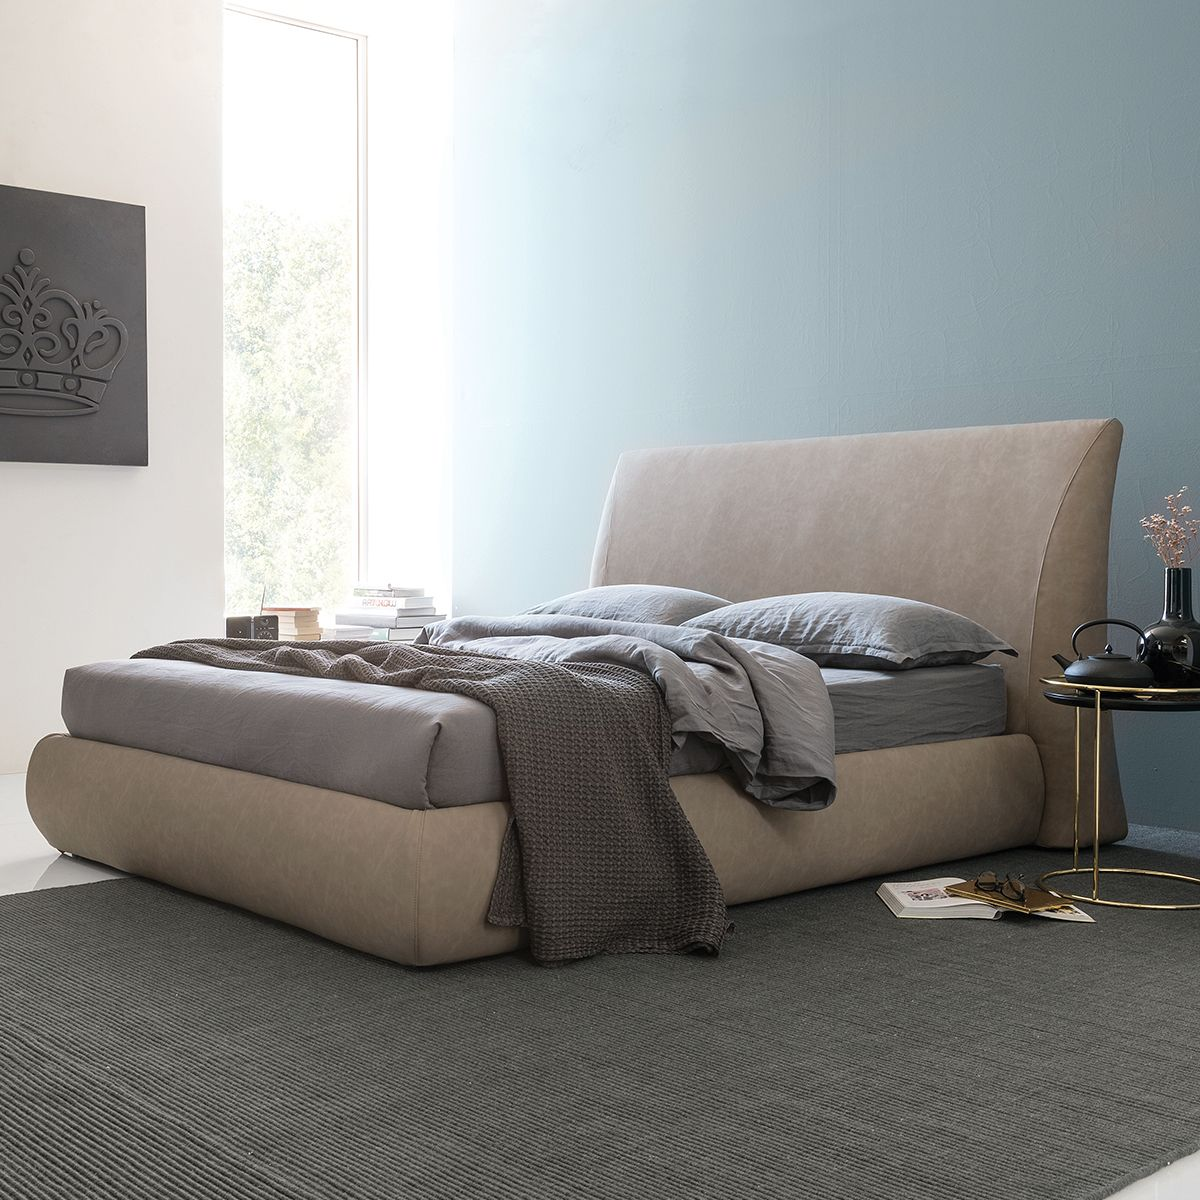 Ready to compliment any bedroom décor, the MICHIGAN bed is